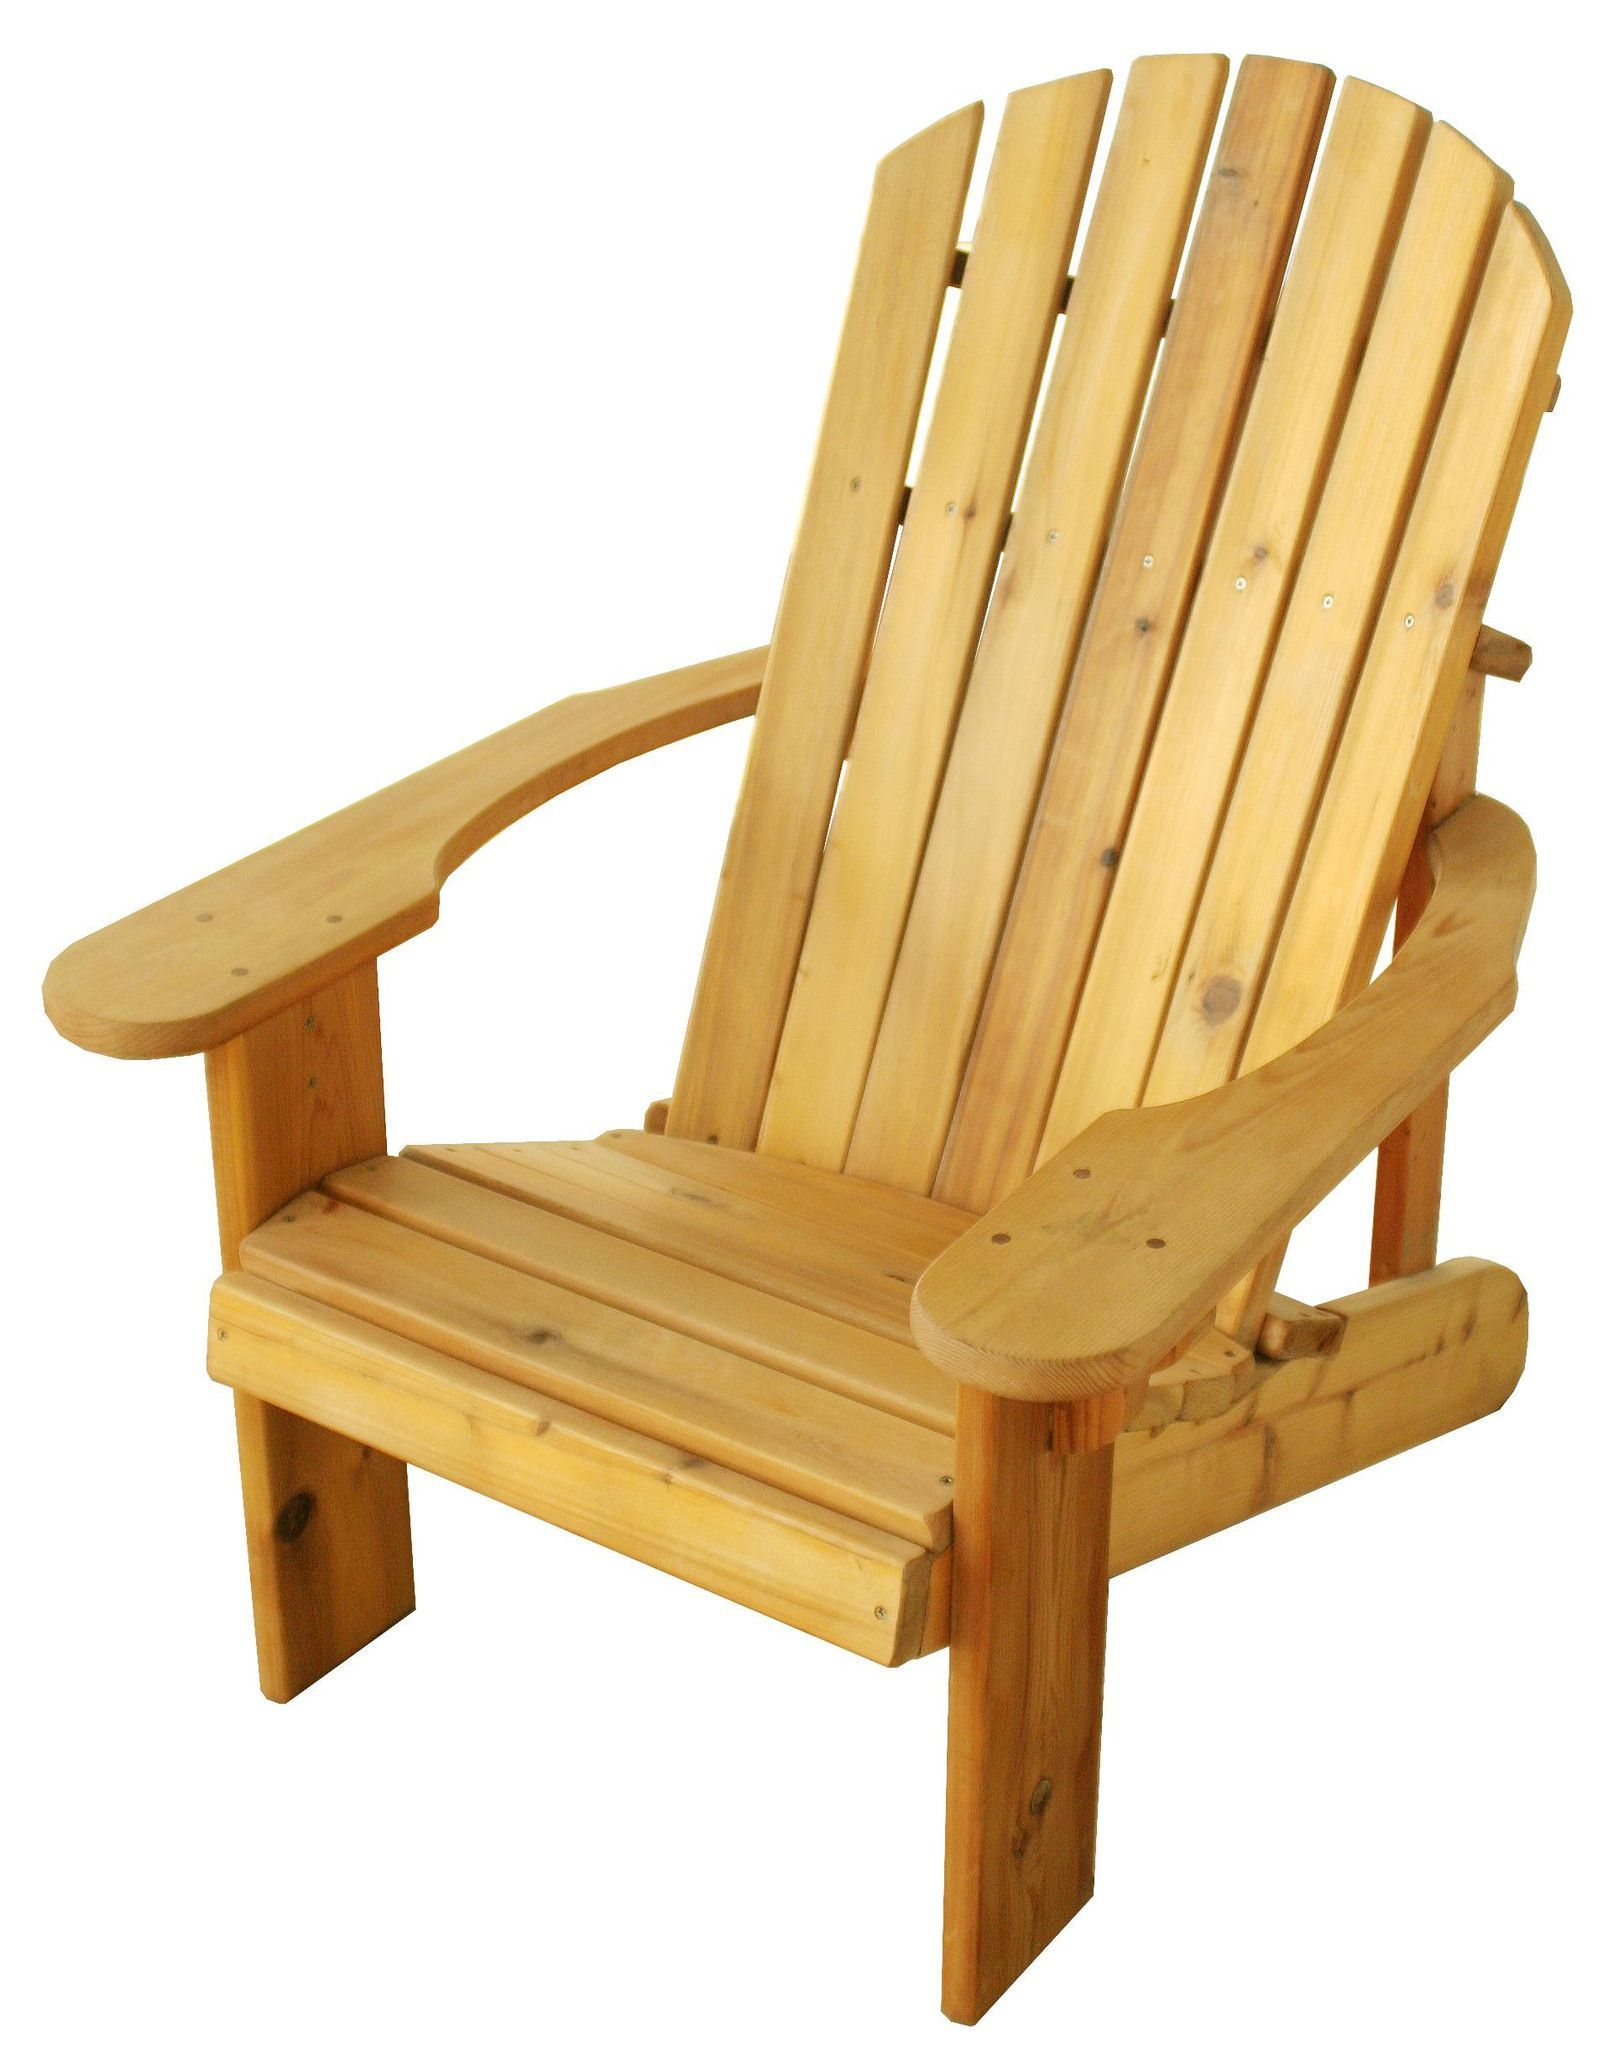 Our topselling conventional adirondack chair this species of cedar